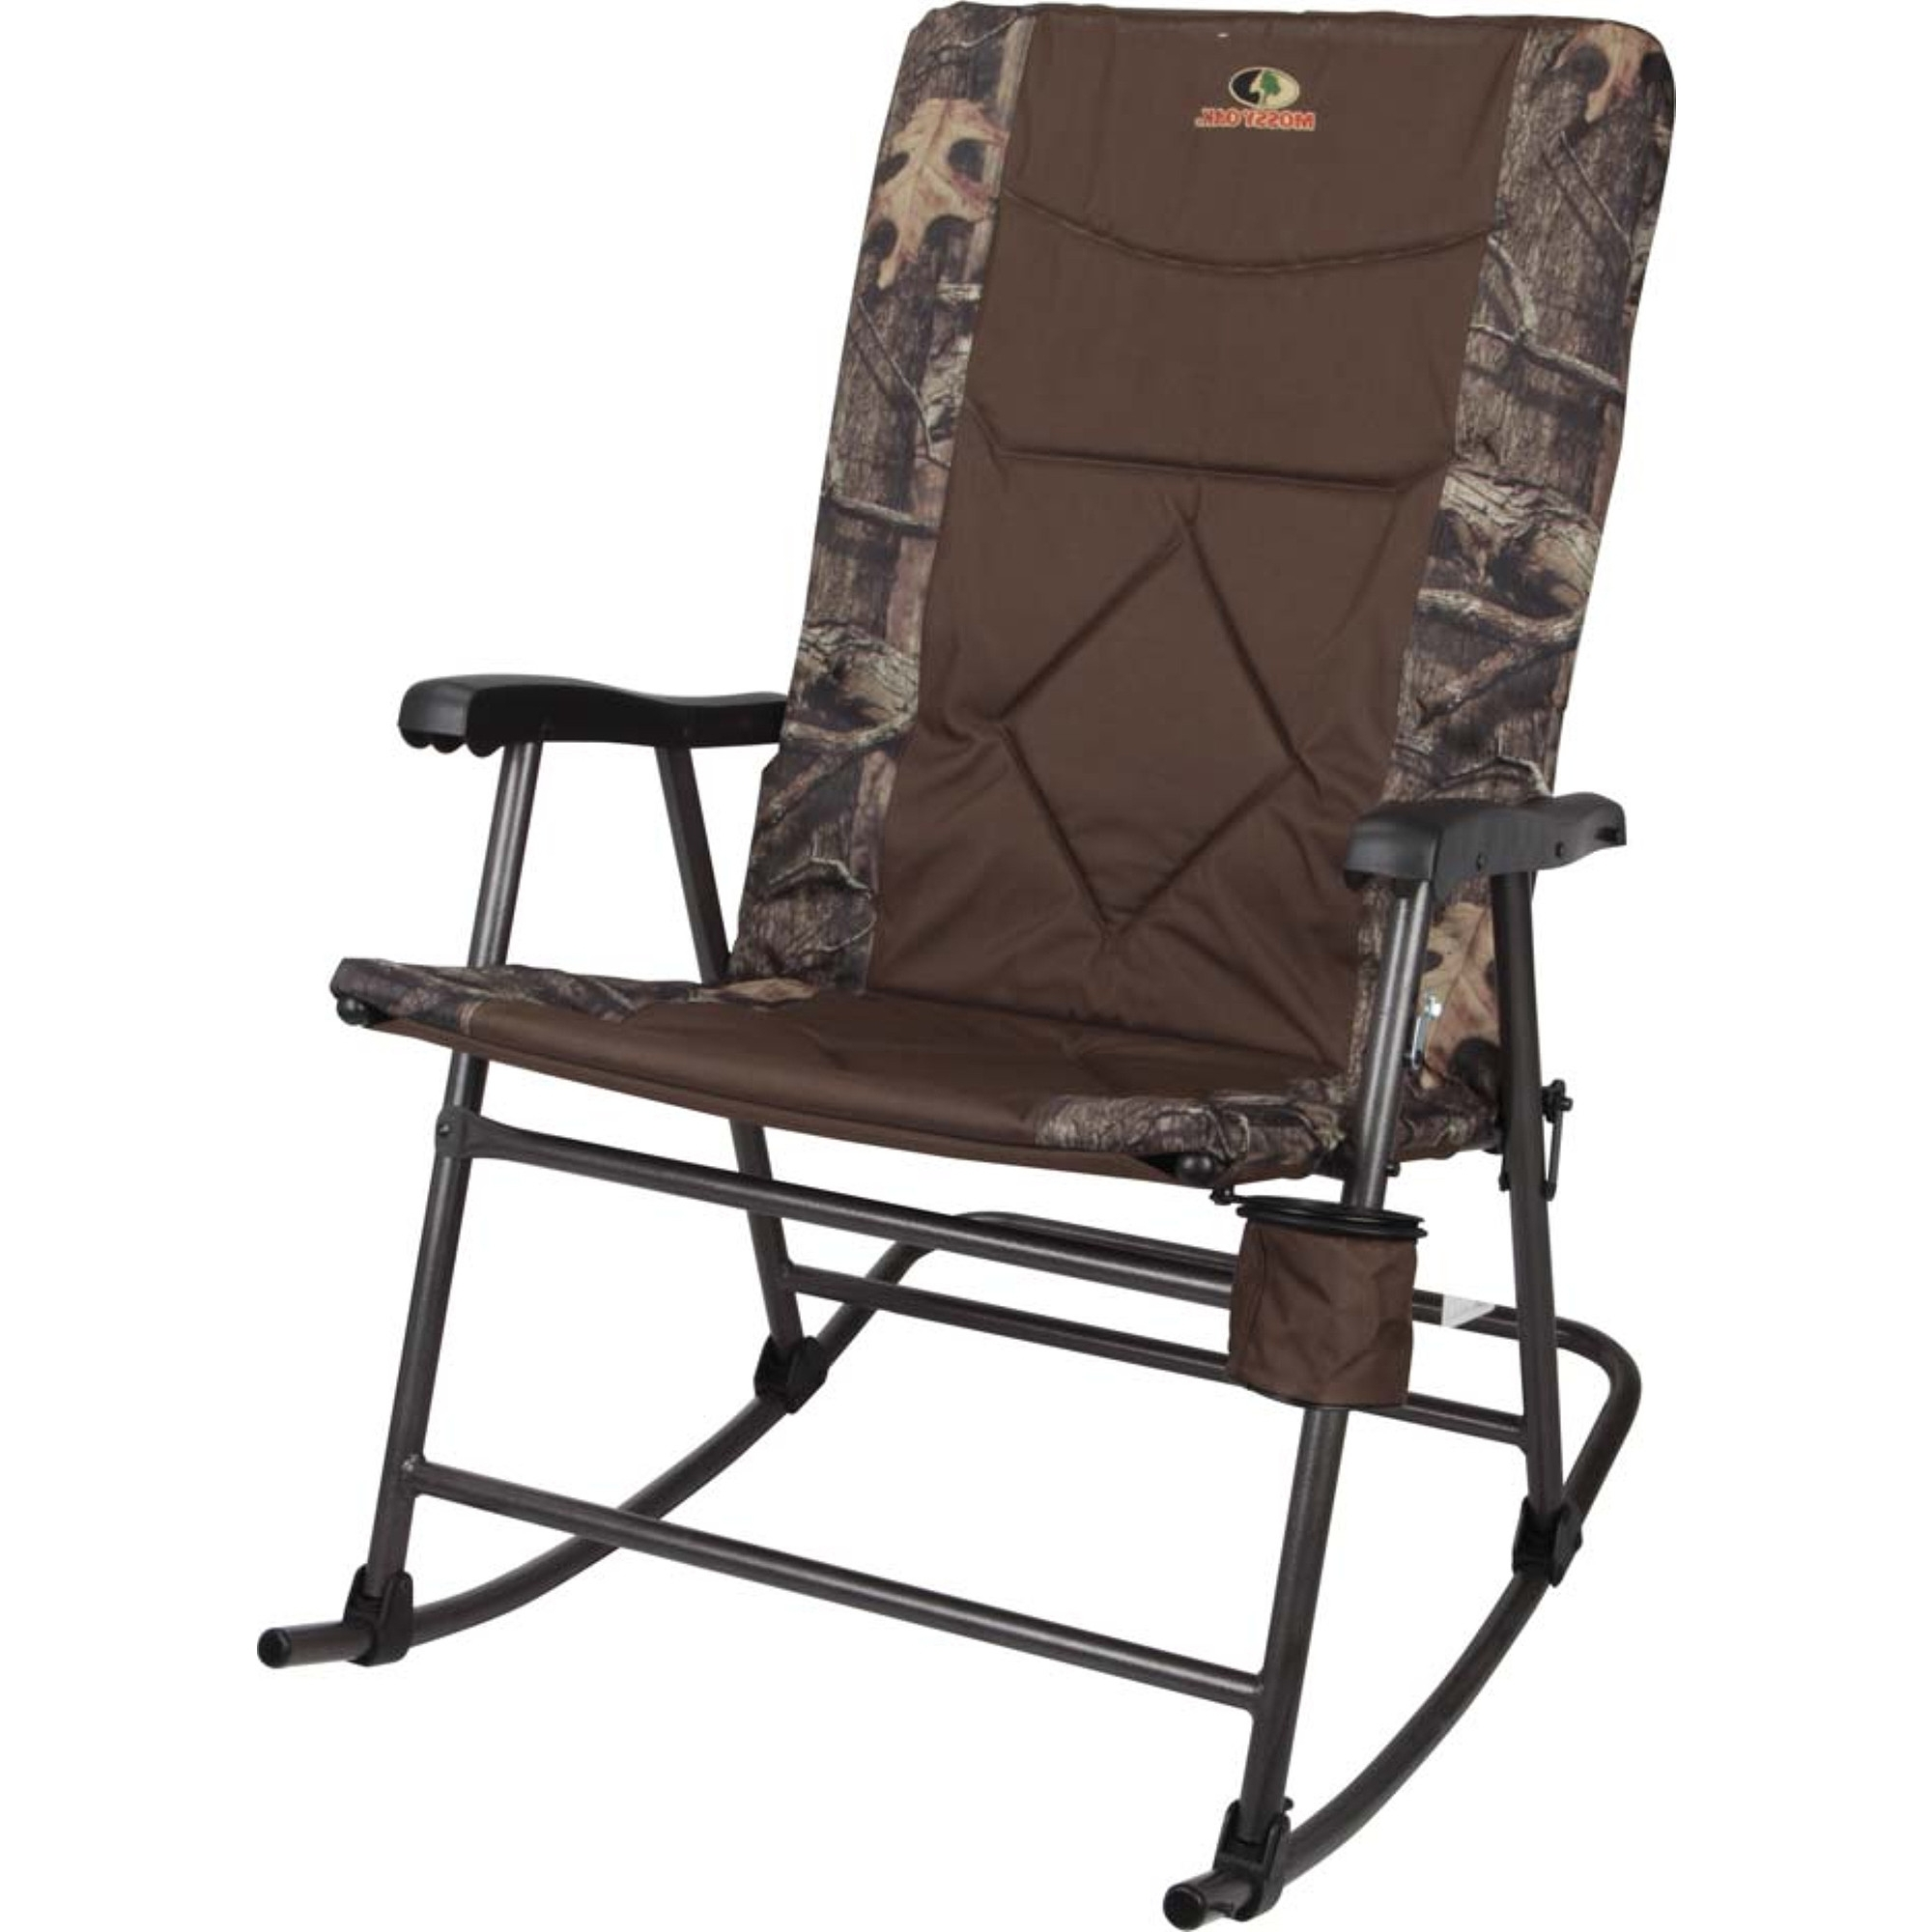 Best And Newest Cushion : Chair Seat Cushions Rocking And Backs Uk Deep Outdoor Pertaining To Rocking Chairs At Walmart (View 11 of 15)